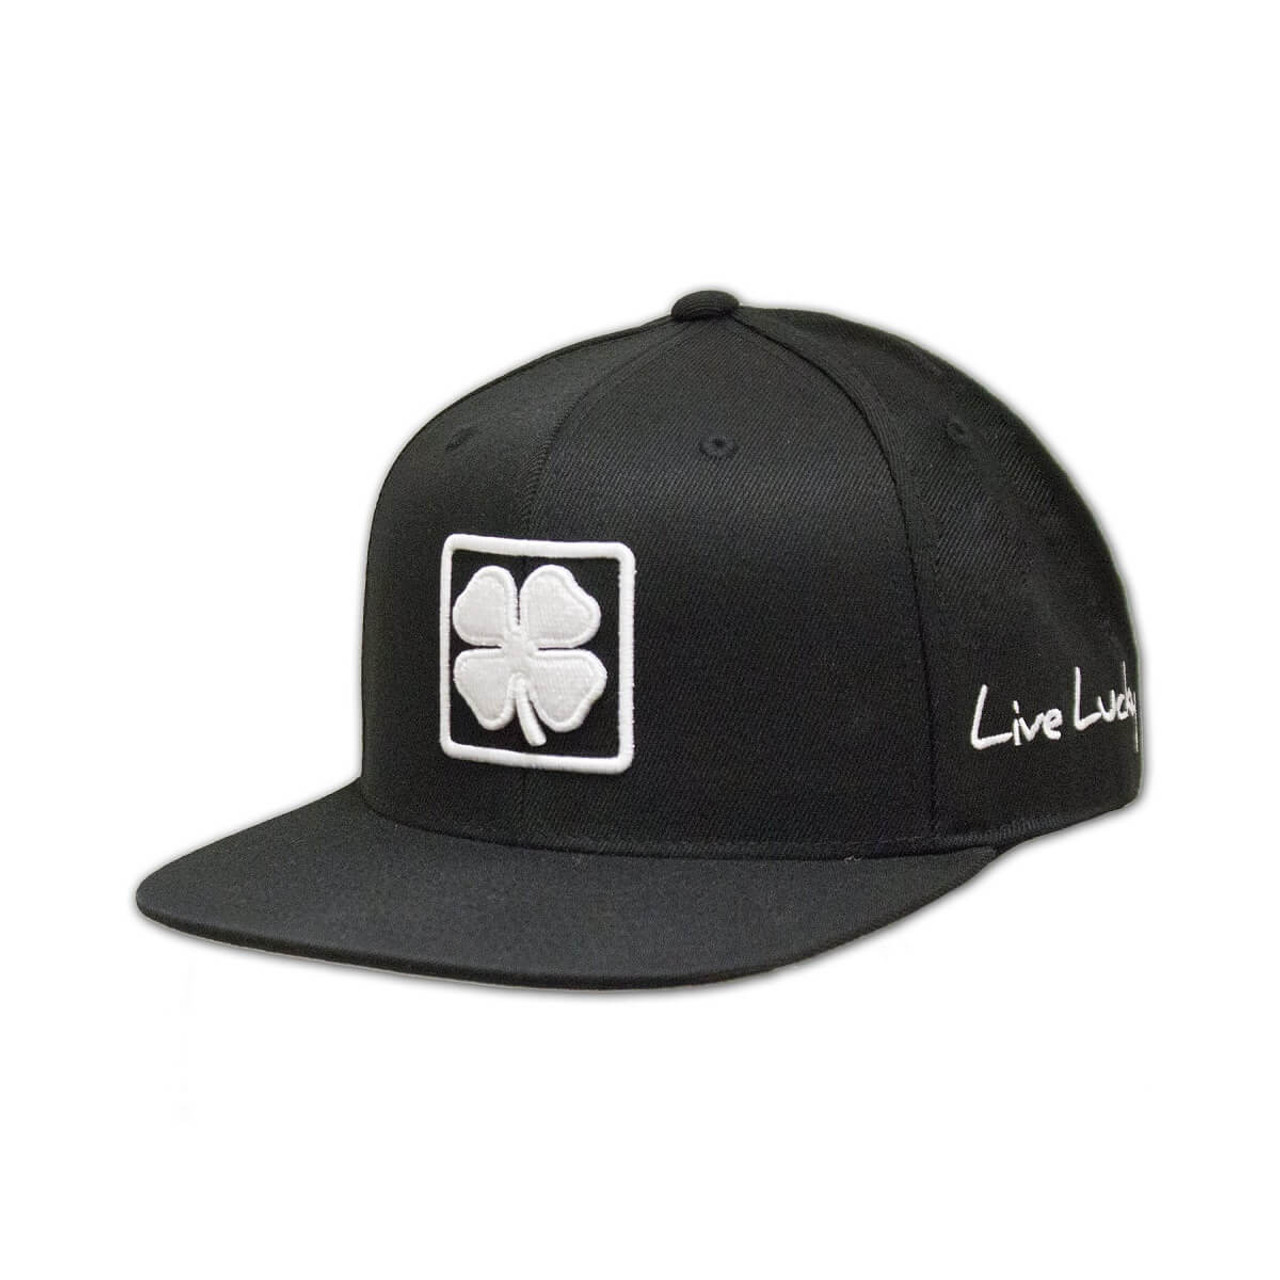 Black Clover Lucky Square Flat Brim Adjustable Hat